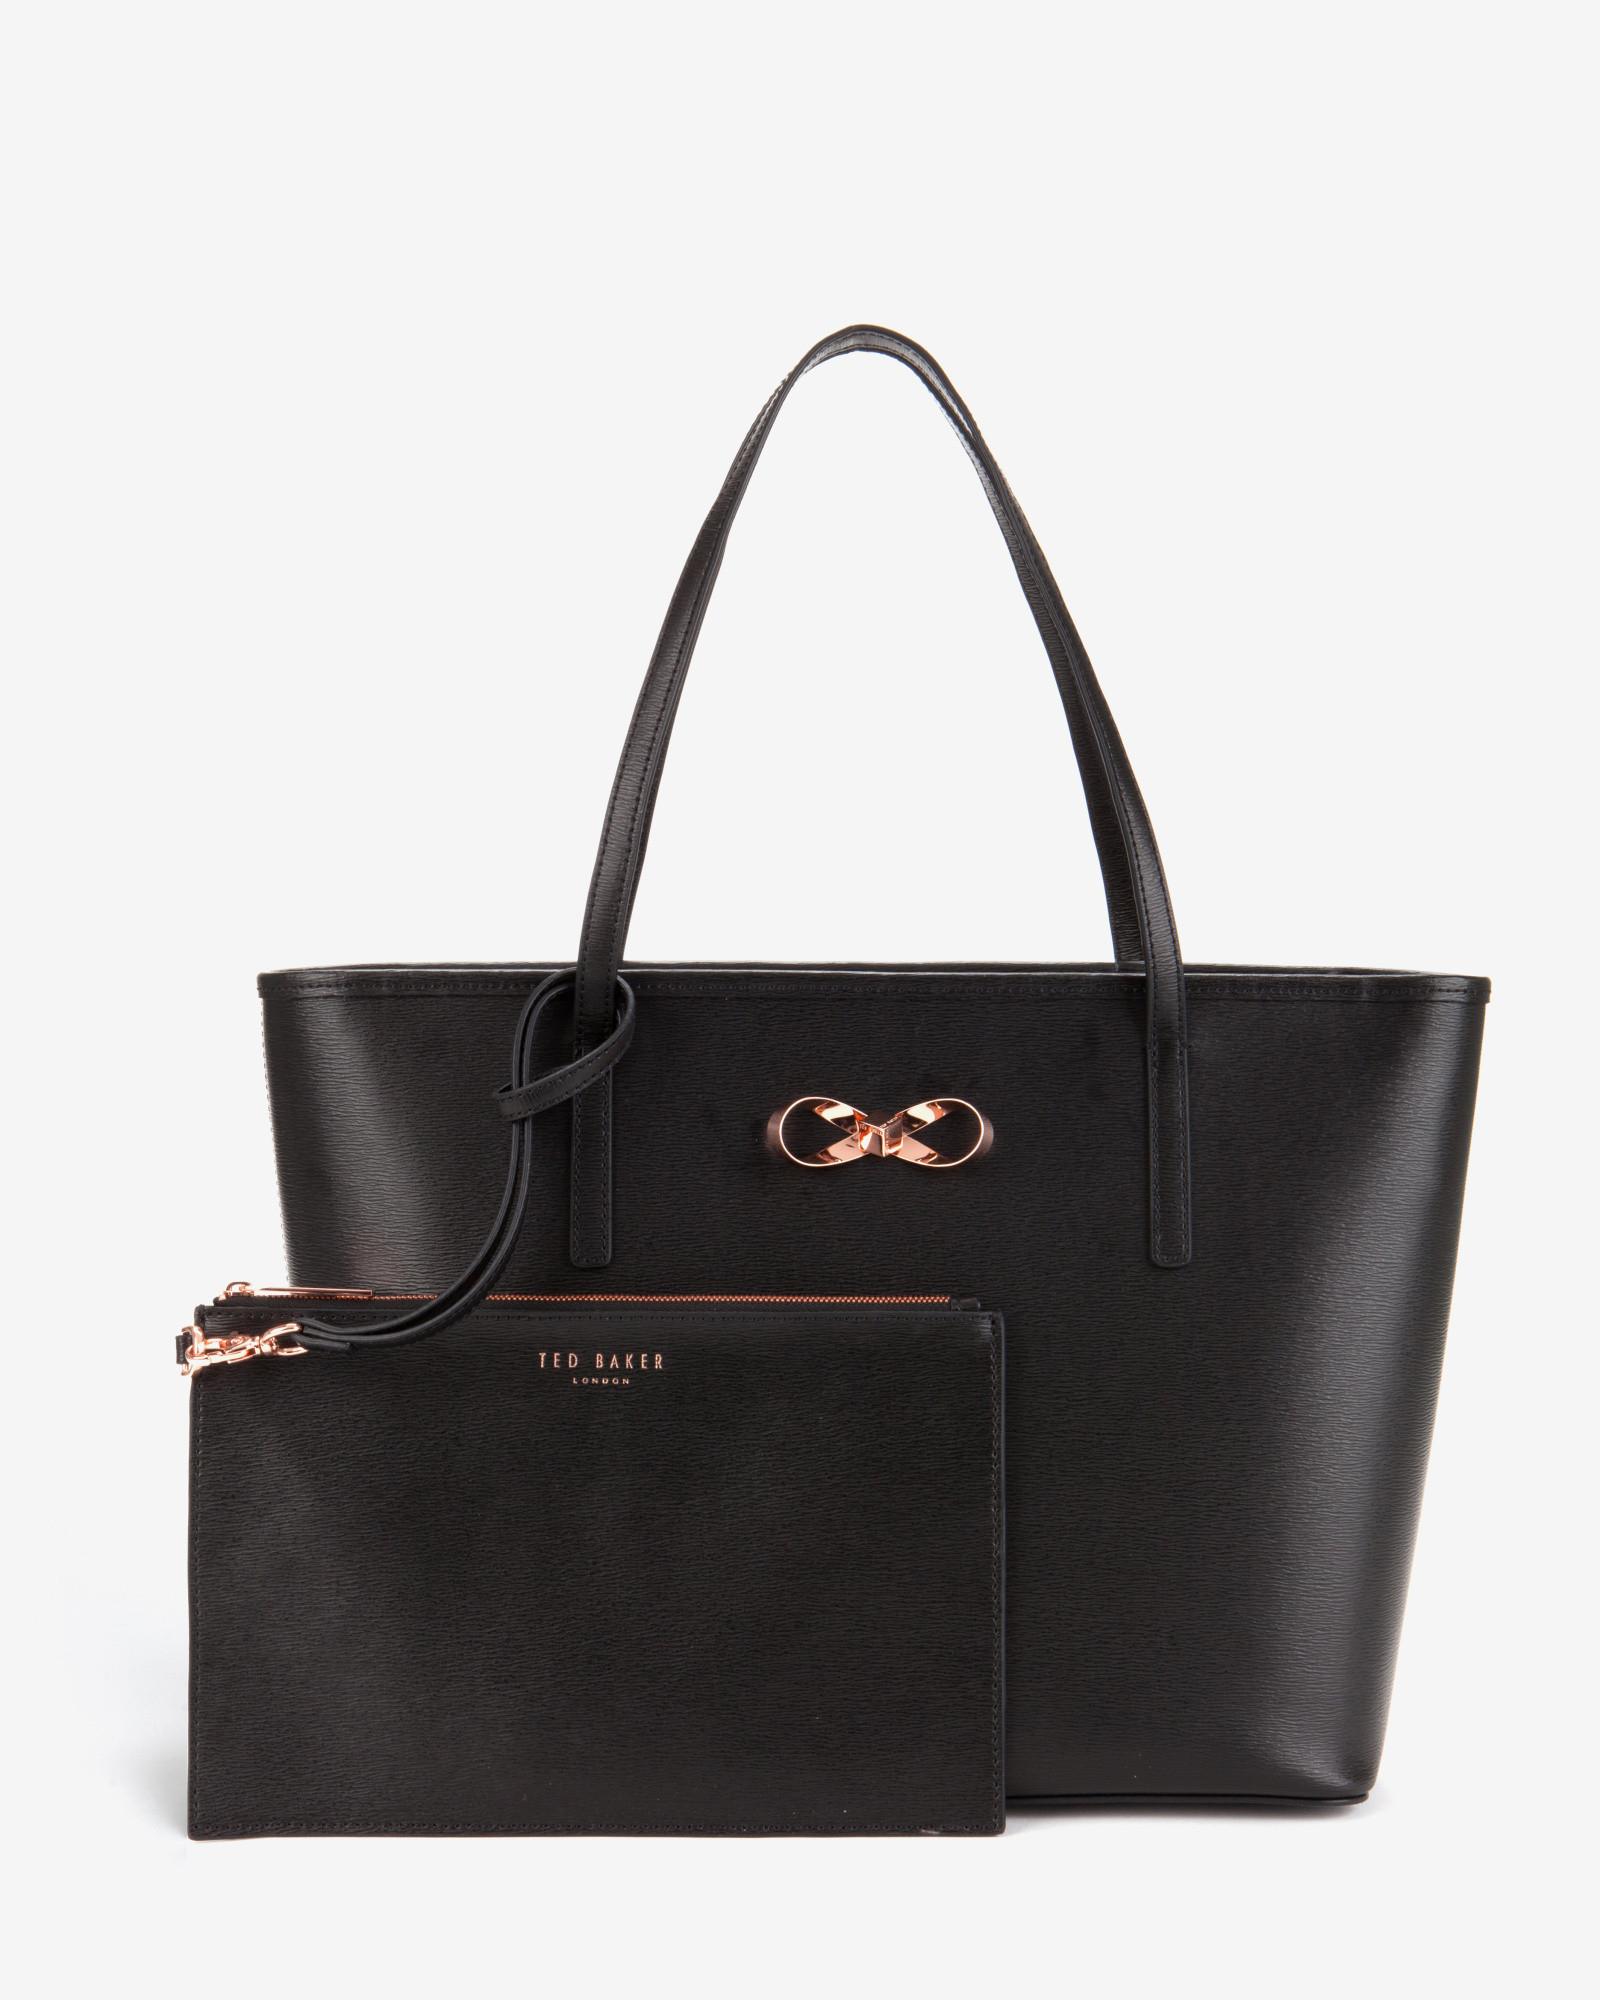 0b72f4dff59 Ted Baker Bonnita Leather Tote in Black - Lyst